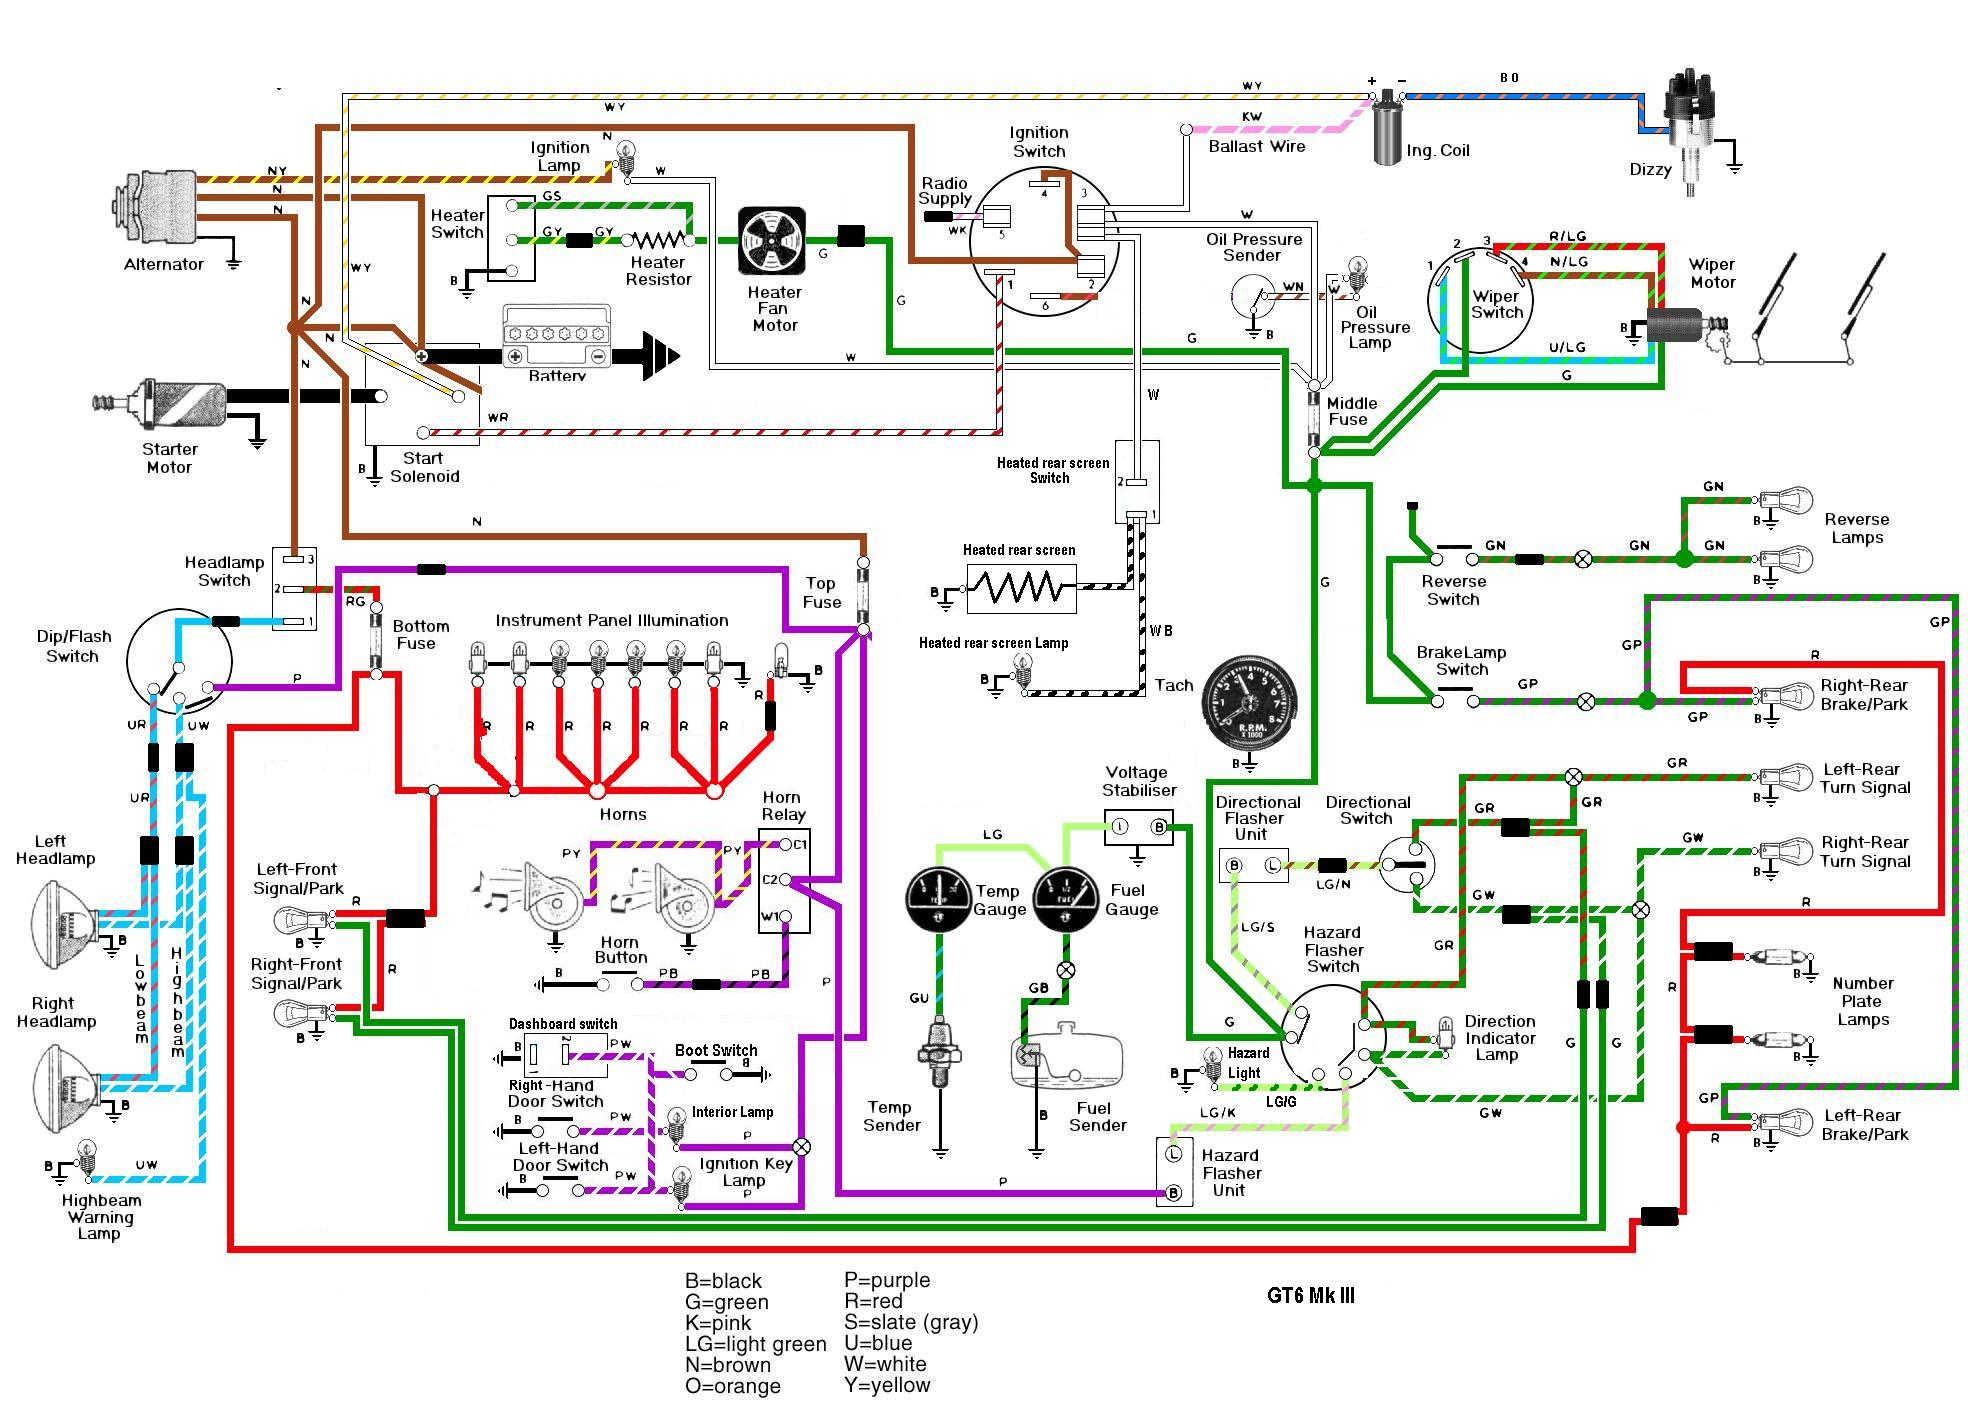 gt6 good wiring diagram mygt6 com gt6 good wiring diagram